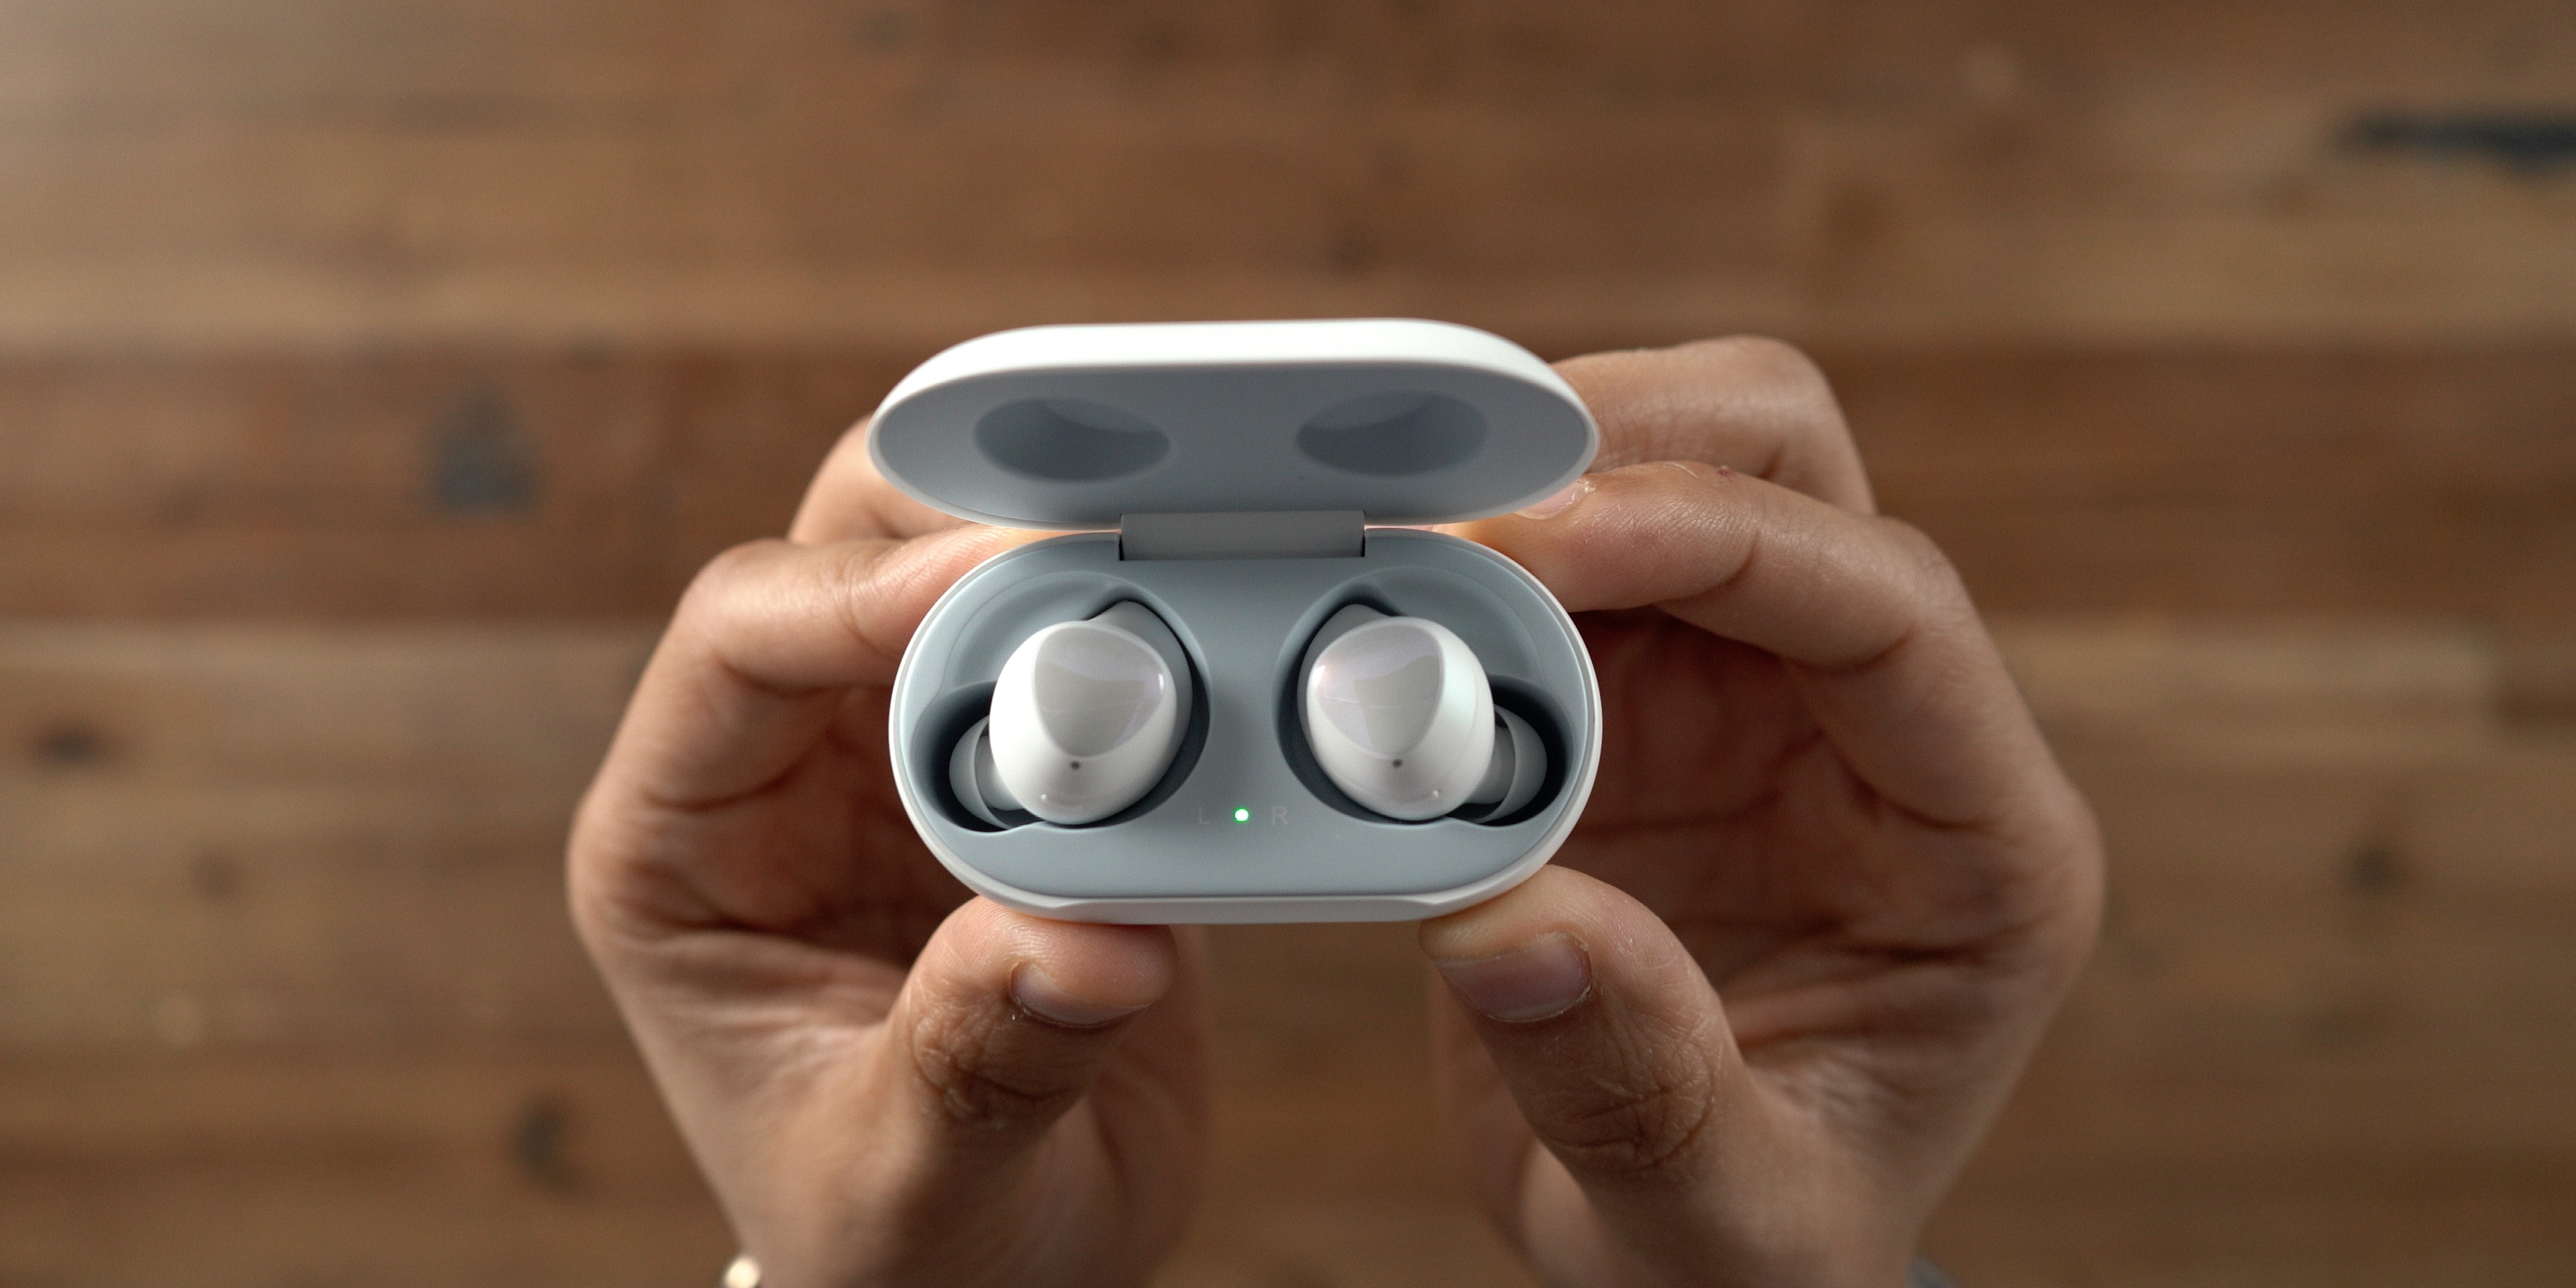 Samsung Galaxy Buds Charging Case Up Close